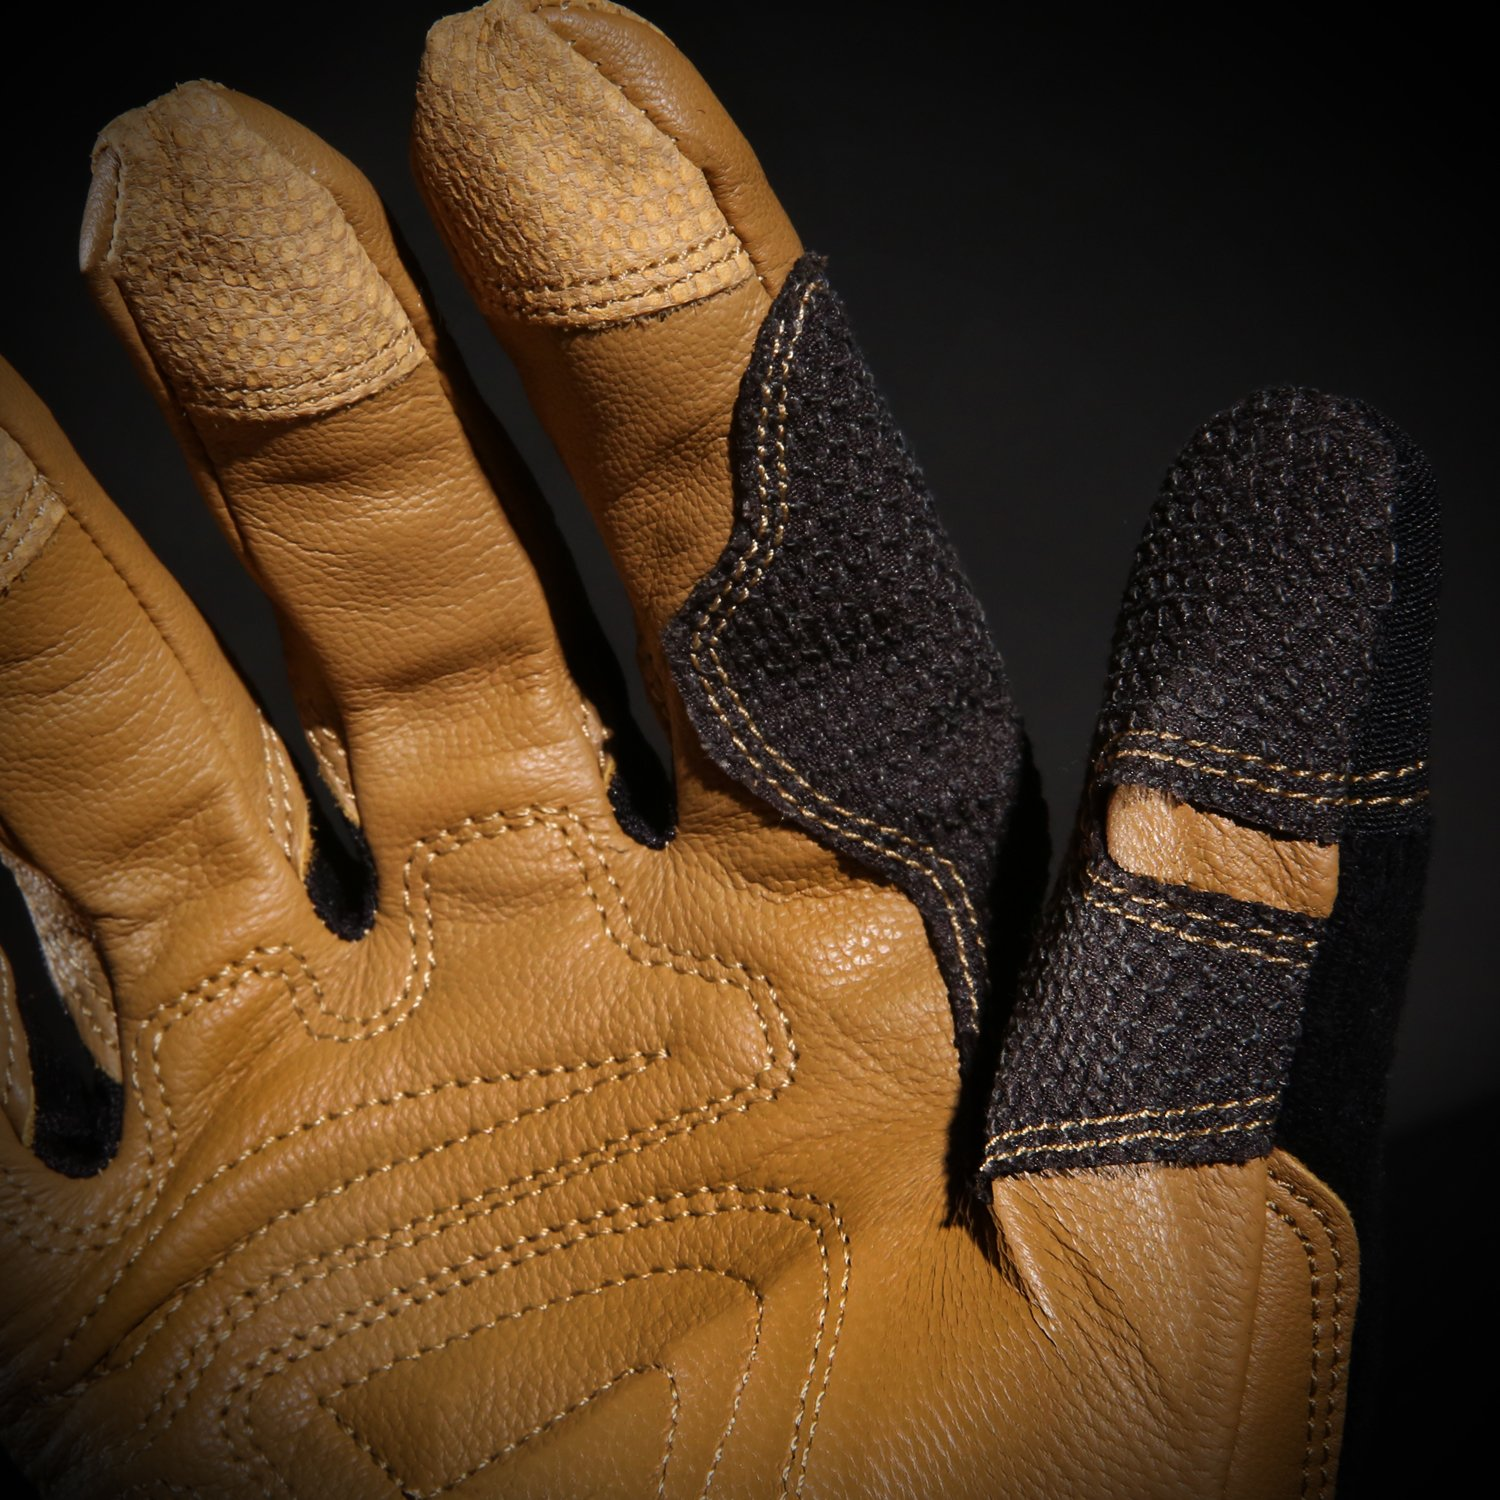 Ironclad Ranchworx Work Gloves RWG2, Premier Leather Work Glove, Performance Fit, Durable, Machine Washable, Sized S, M, L, XL, XXL, XXXL (1 Pair) by Ironclad (Image #8)